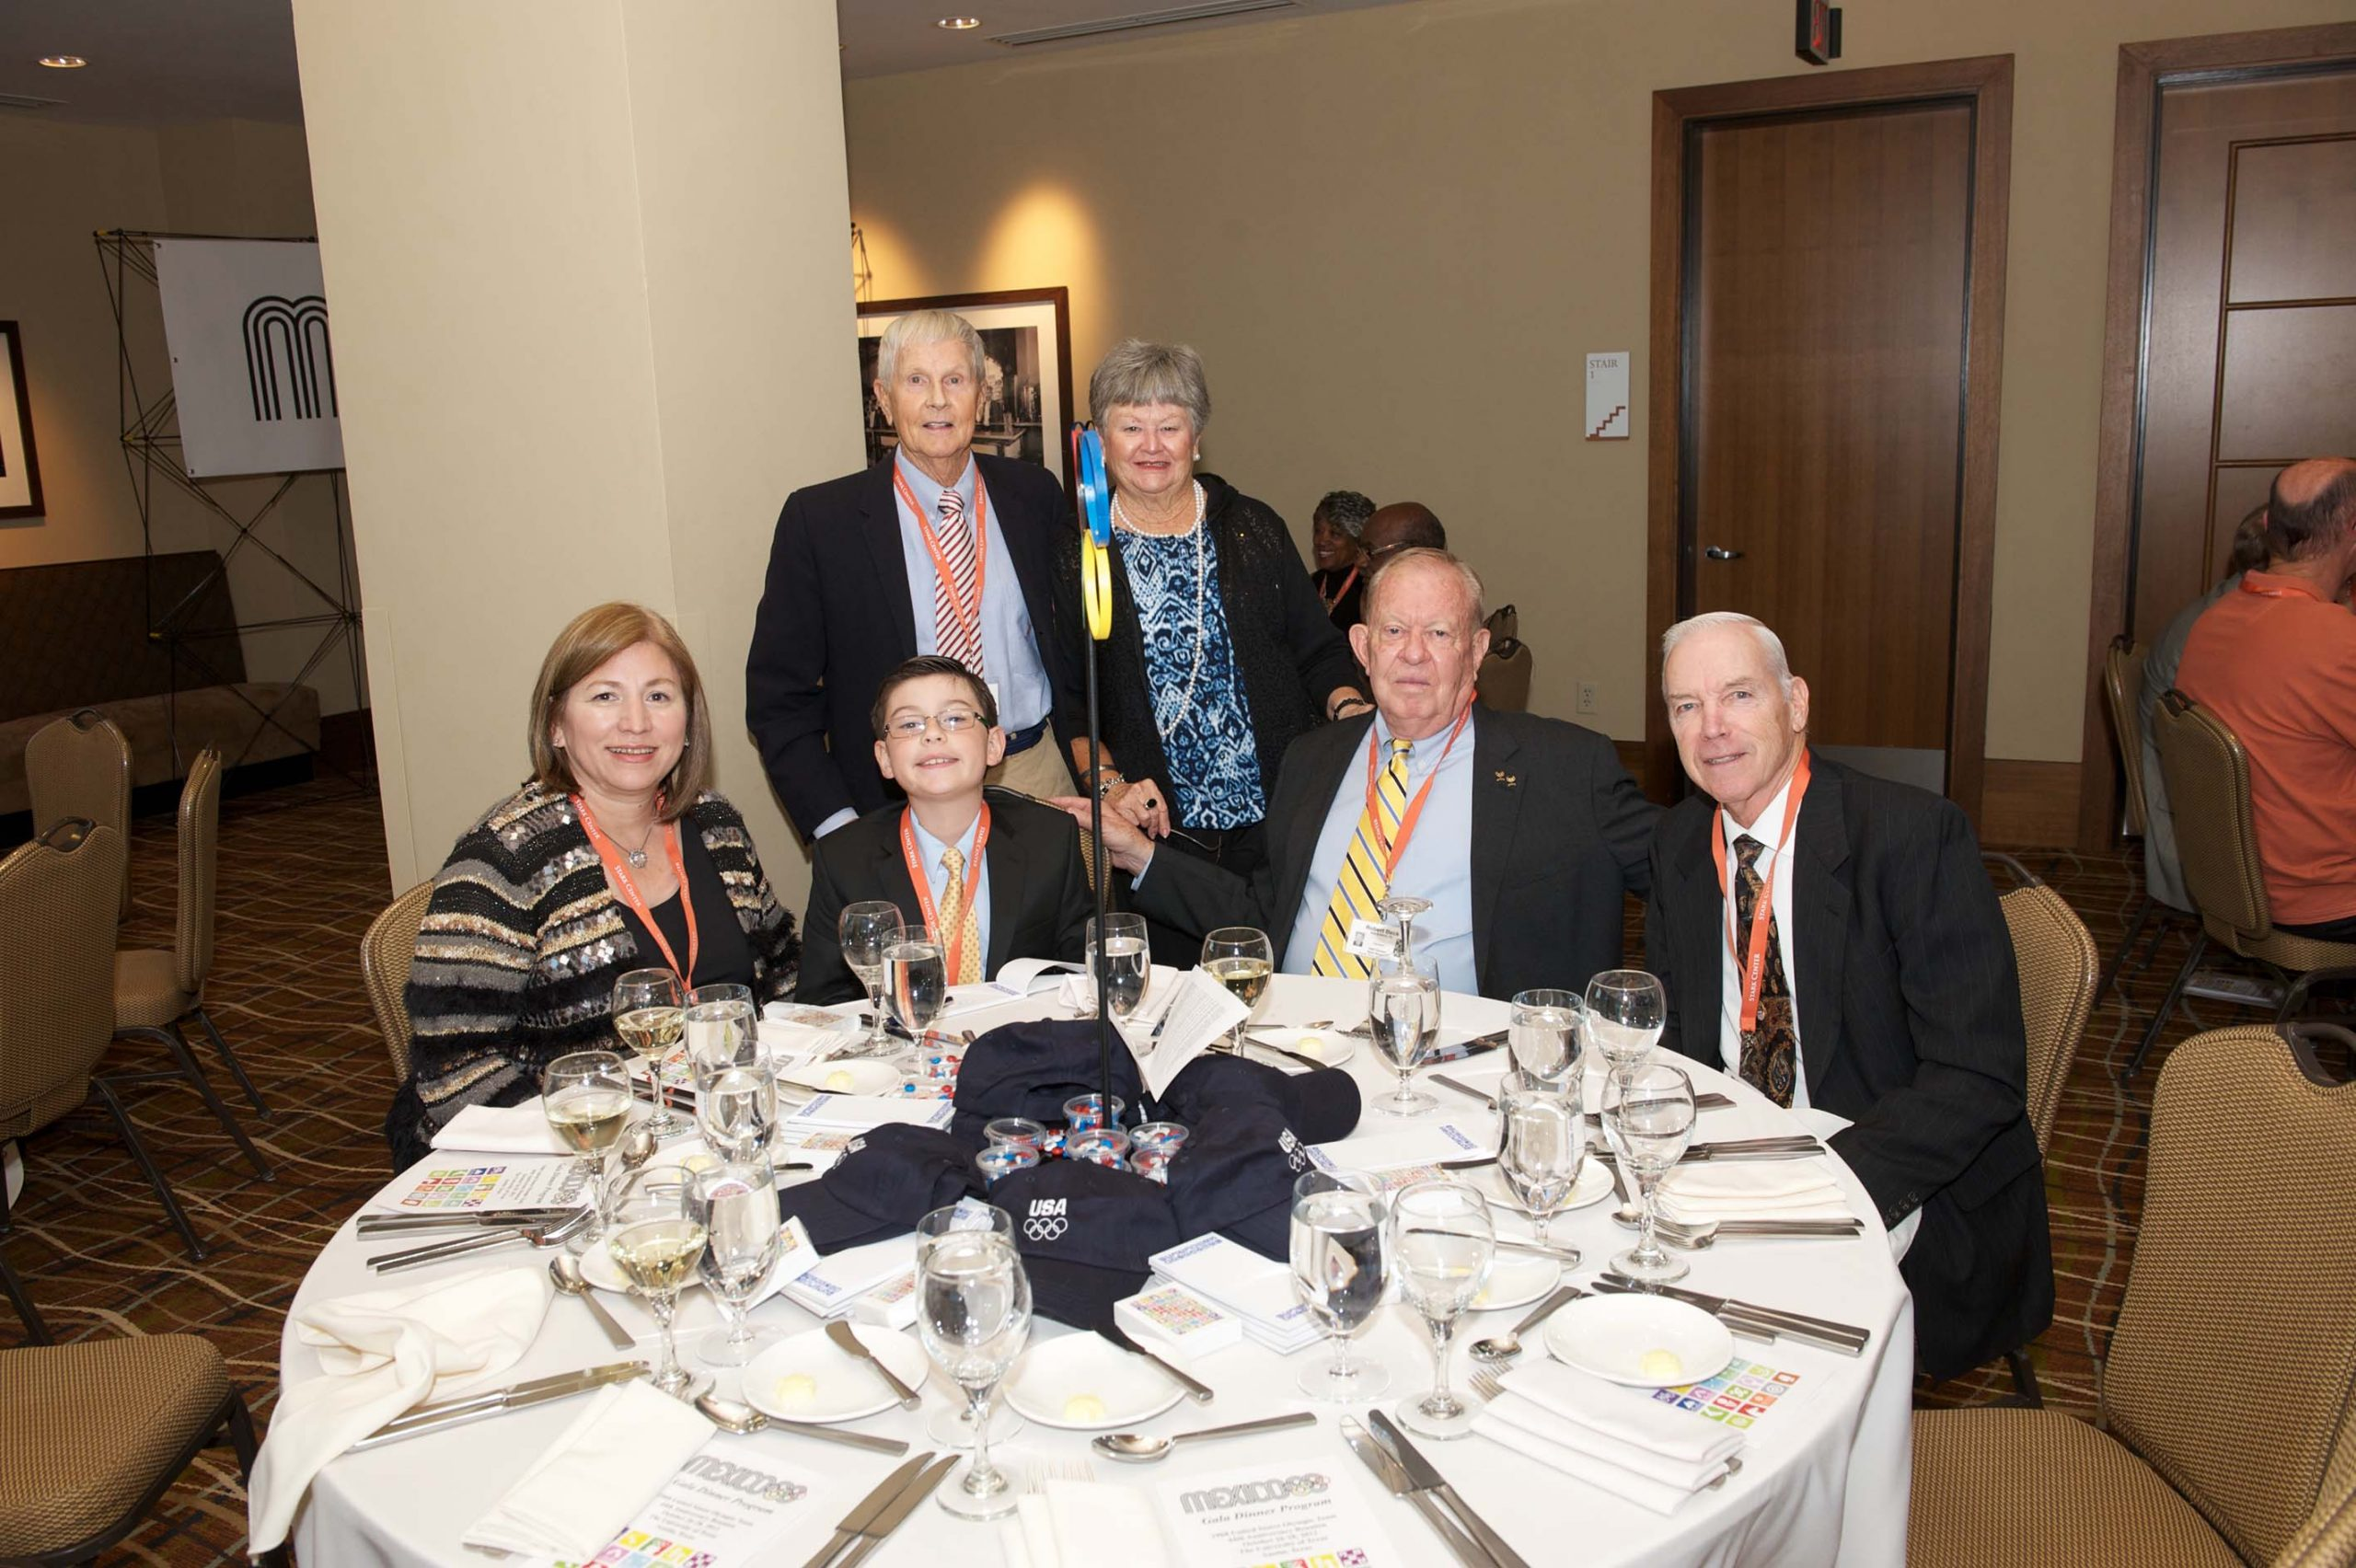 Six people at a table at the 1968 U.S. Olympic Team 2012 Reunion.